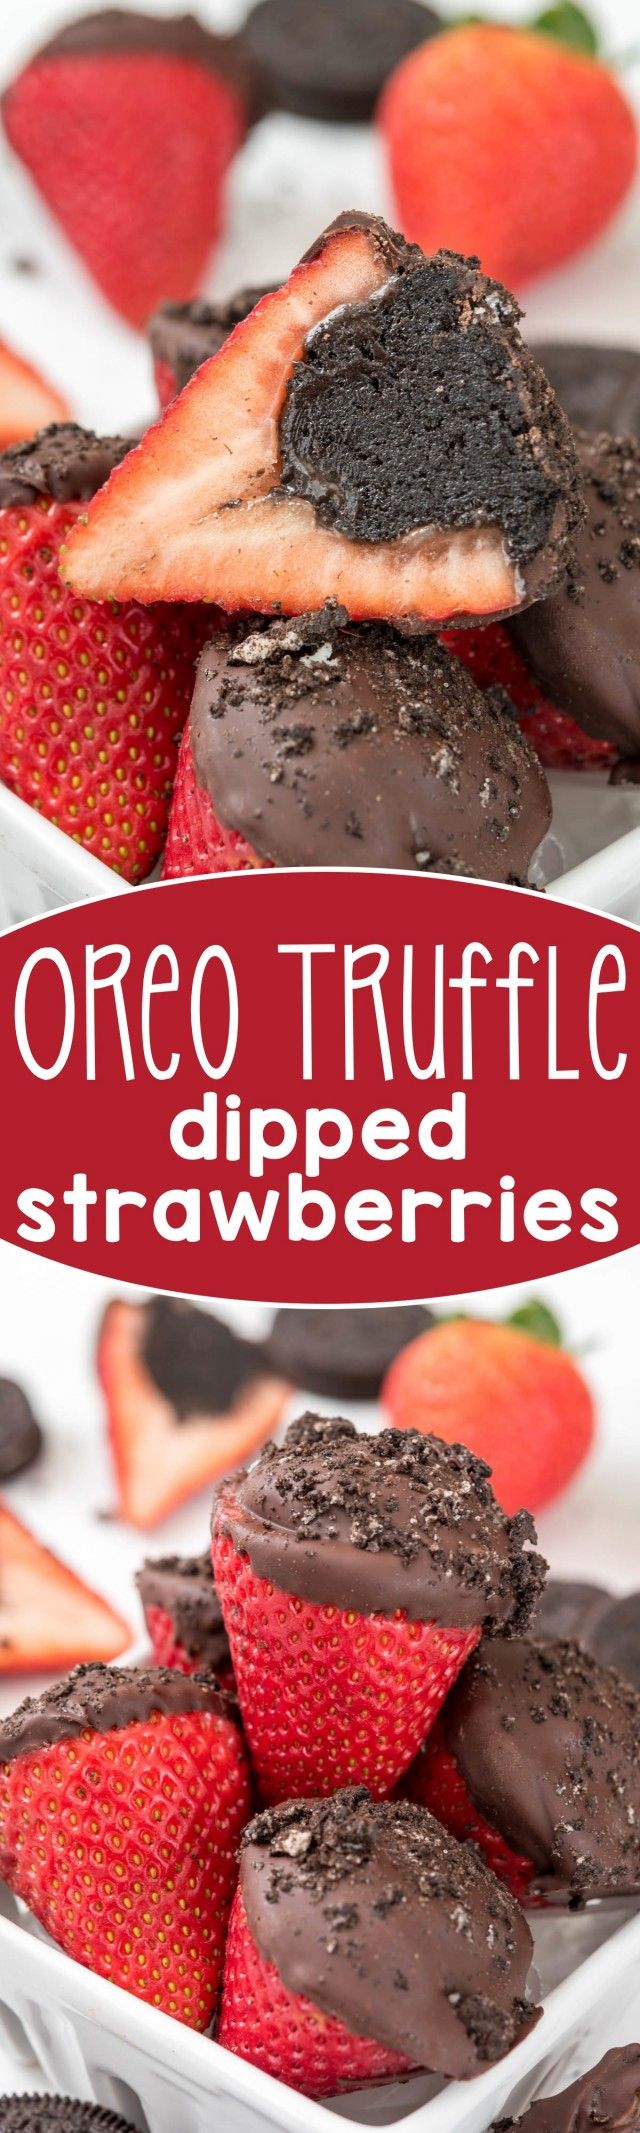 Oreo Truffle Dipped Strawberries   13 Snacks Every Lazy Girl Should Know How to Make   http://www.hercampus.com/health/food/13-snacks-every-lazy-girl-should-know-how-make